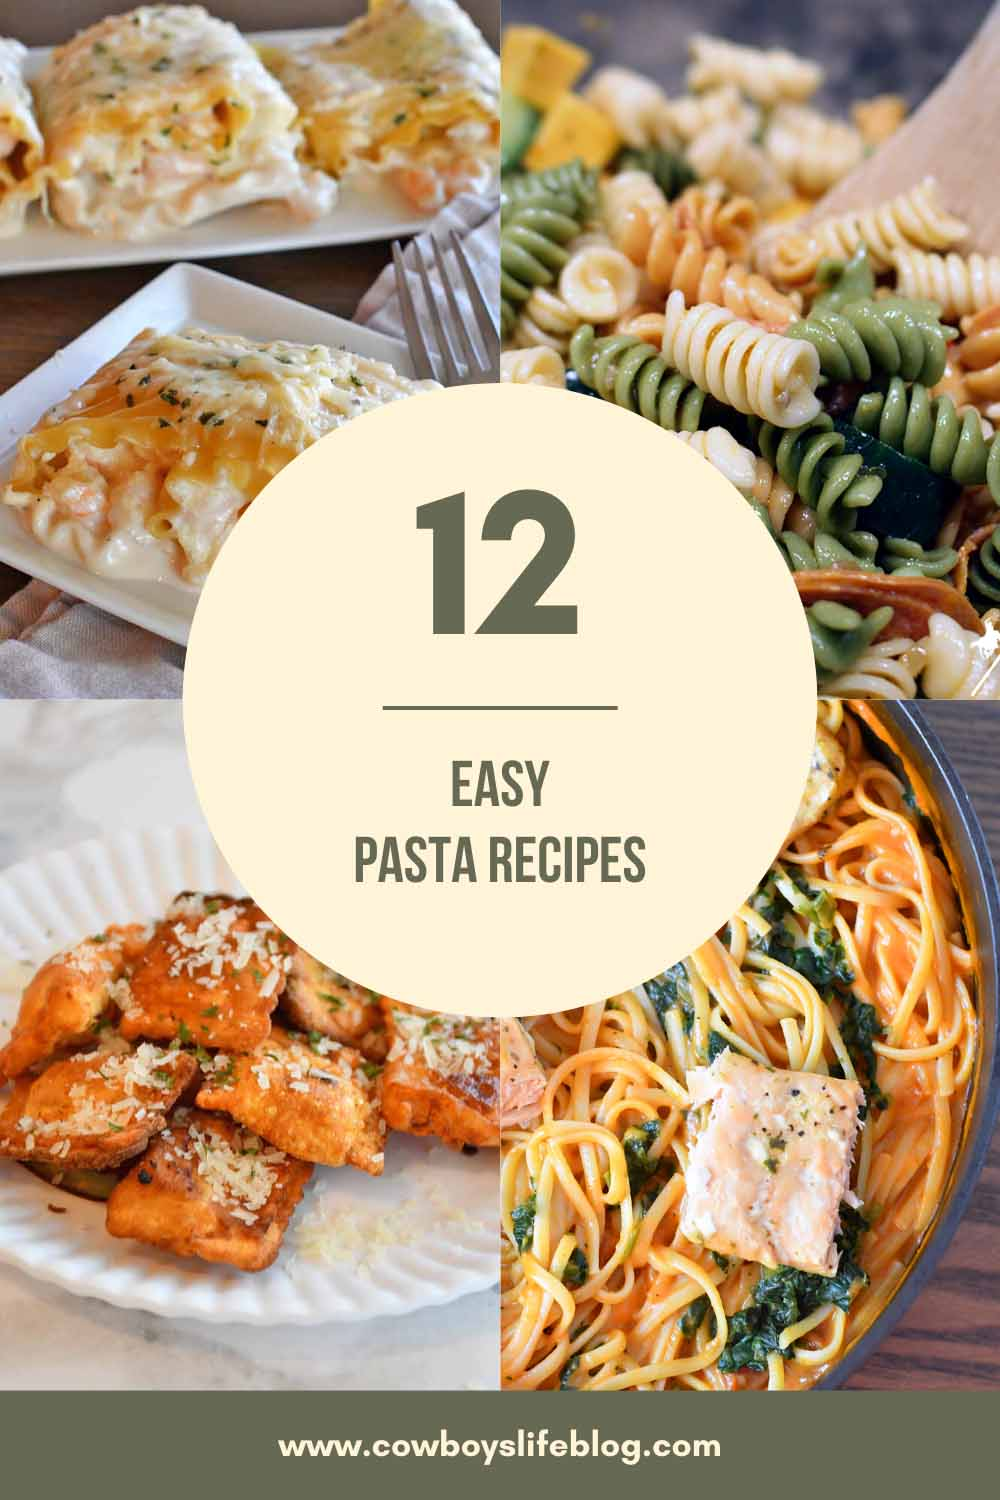 12 Easy Pasta Recipes